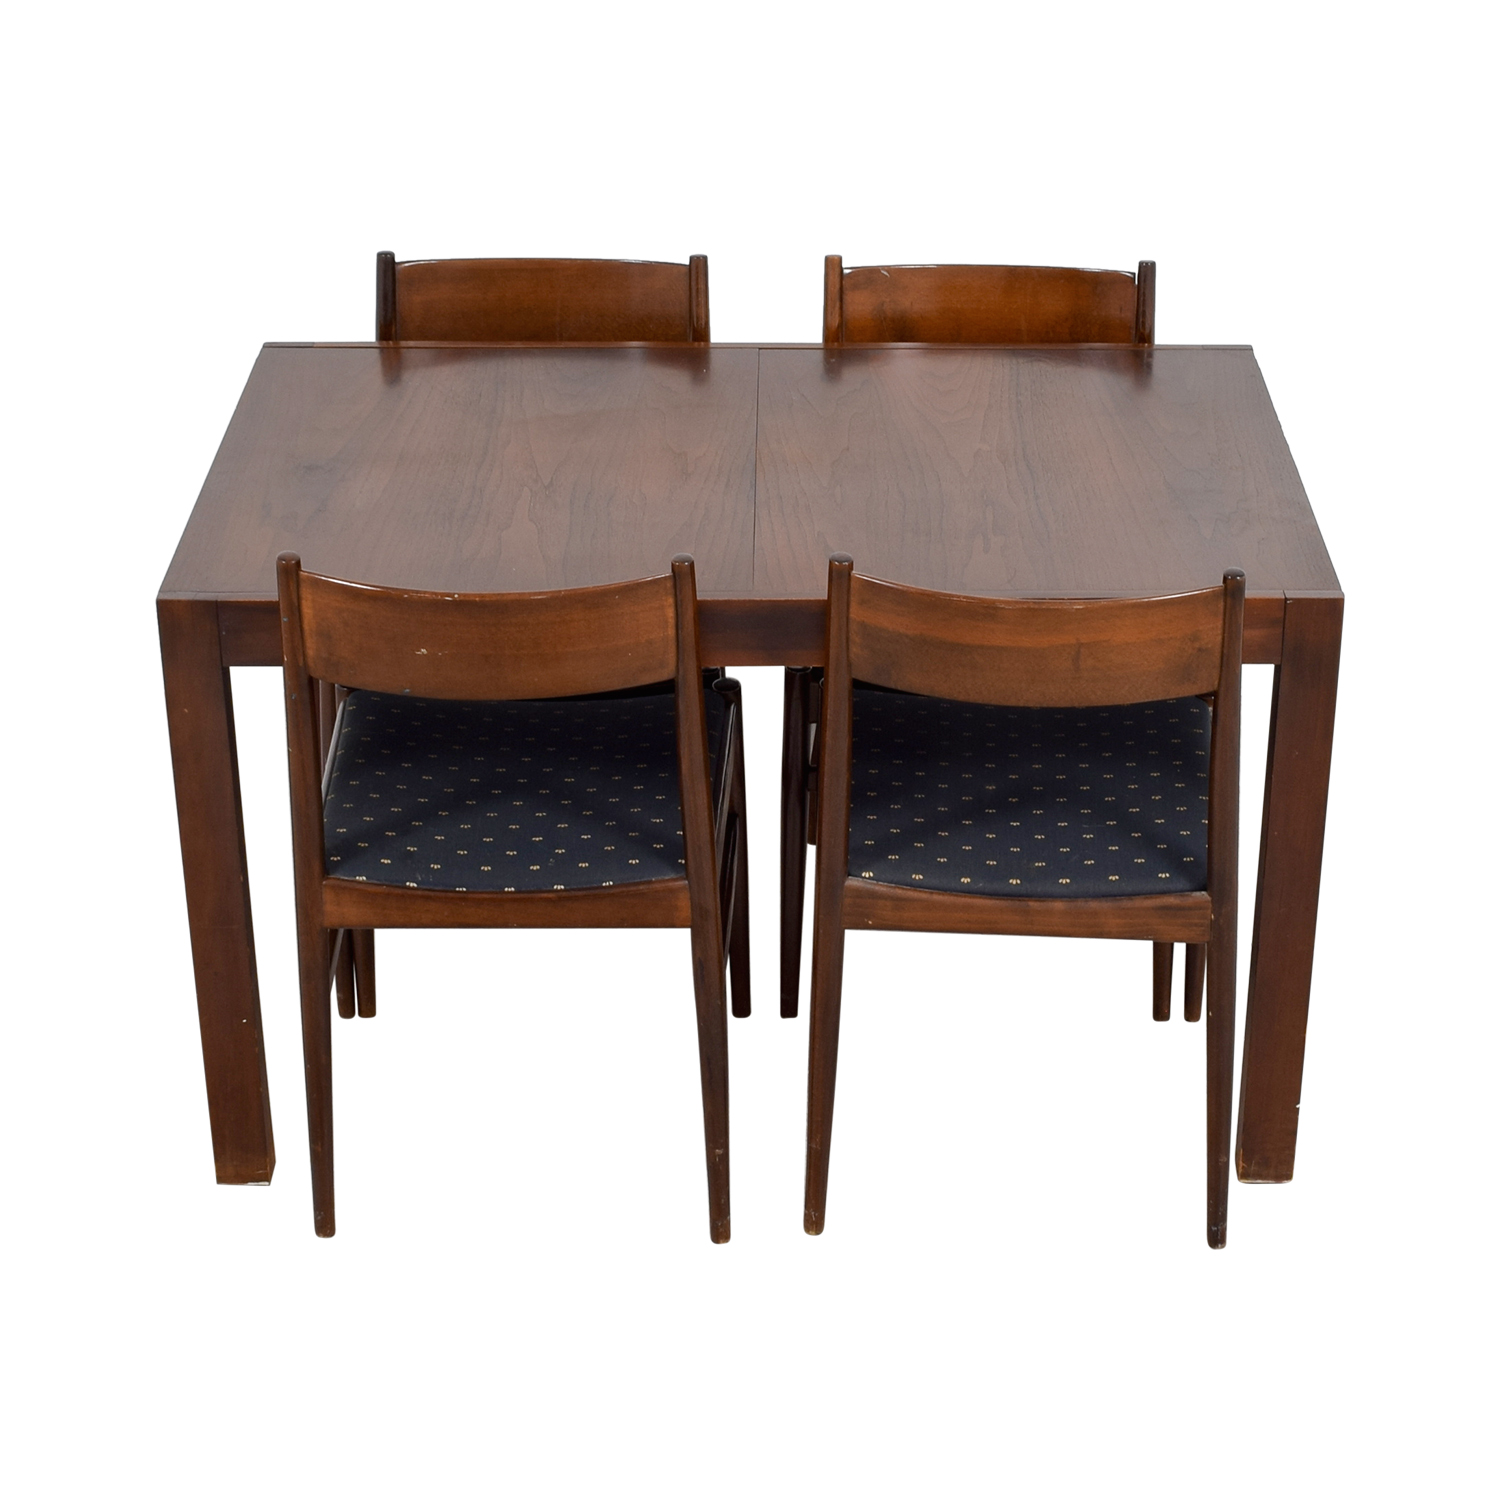 Extendable Wood Dining Set with Blue Seat Cushions